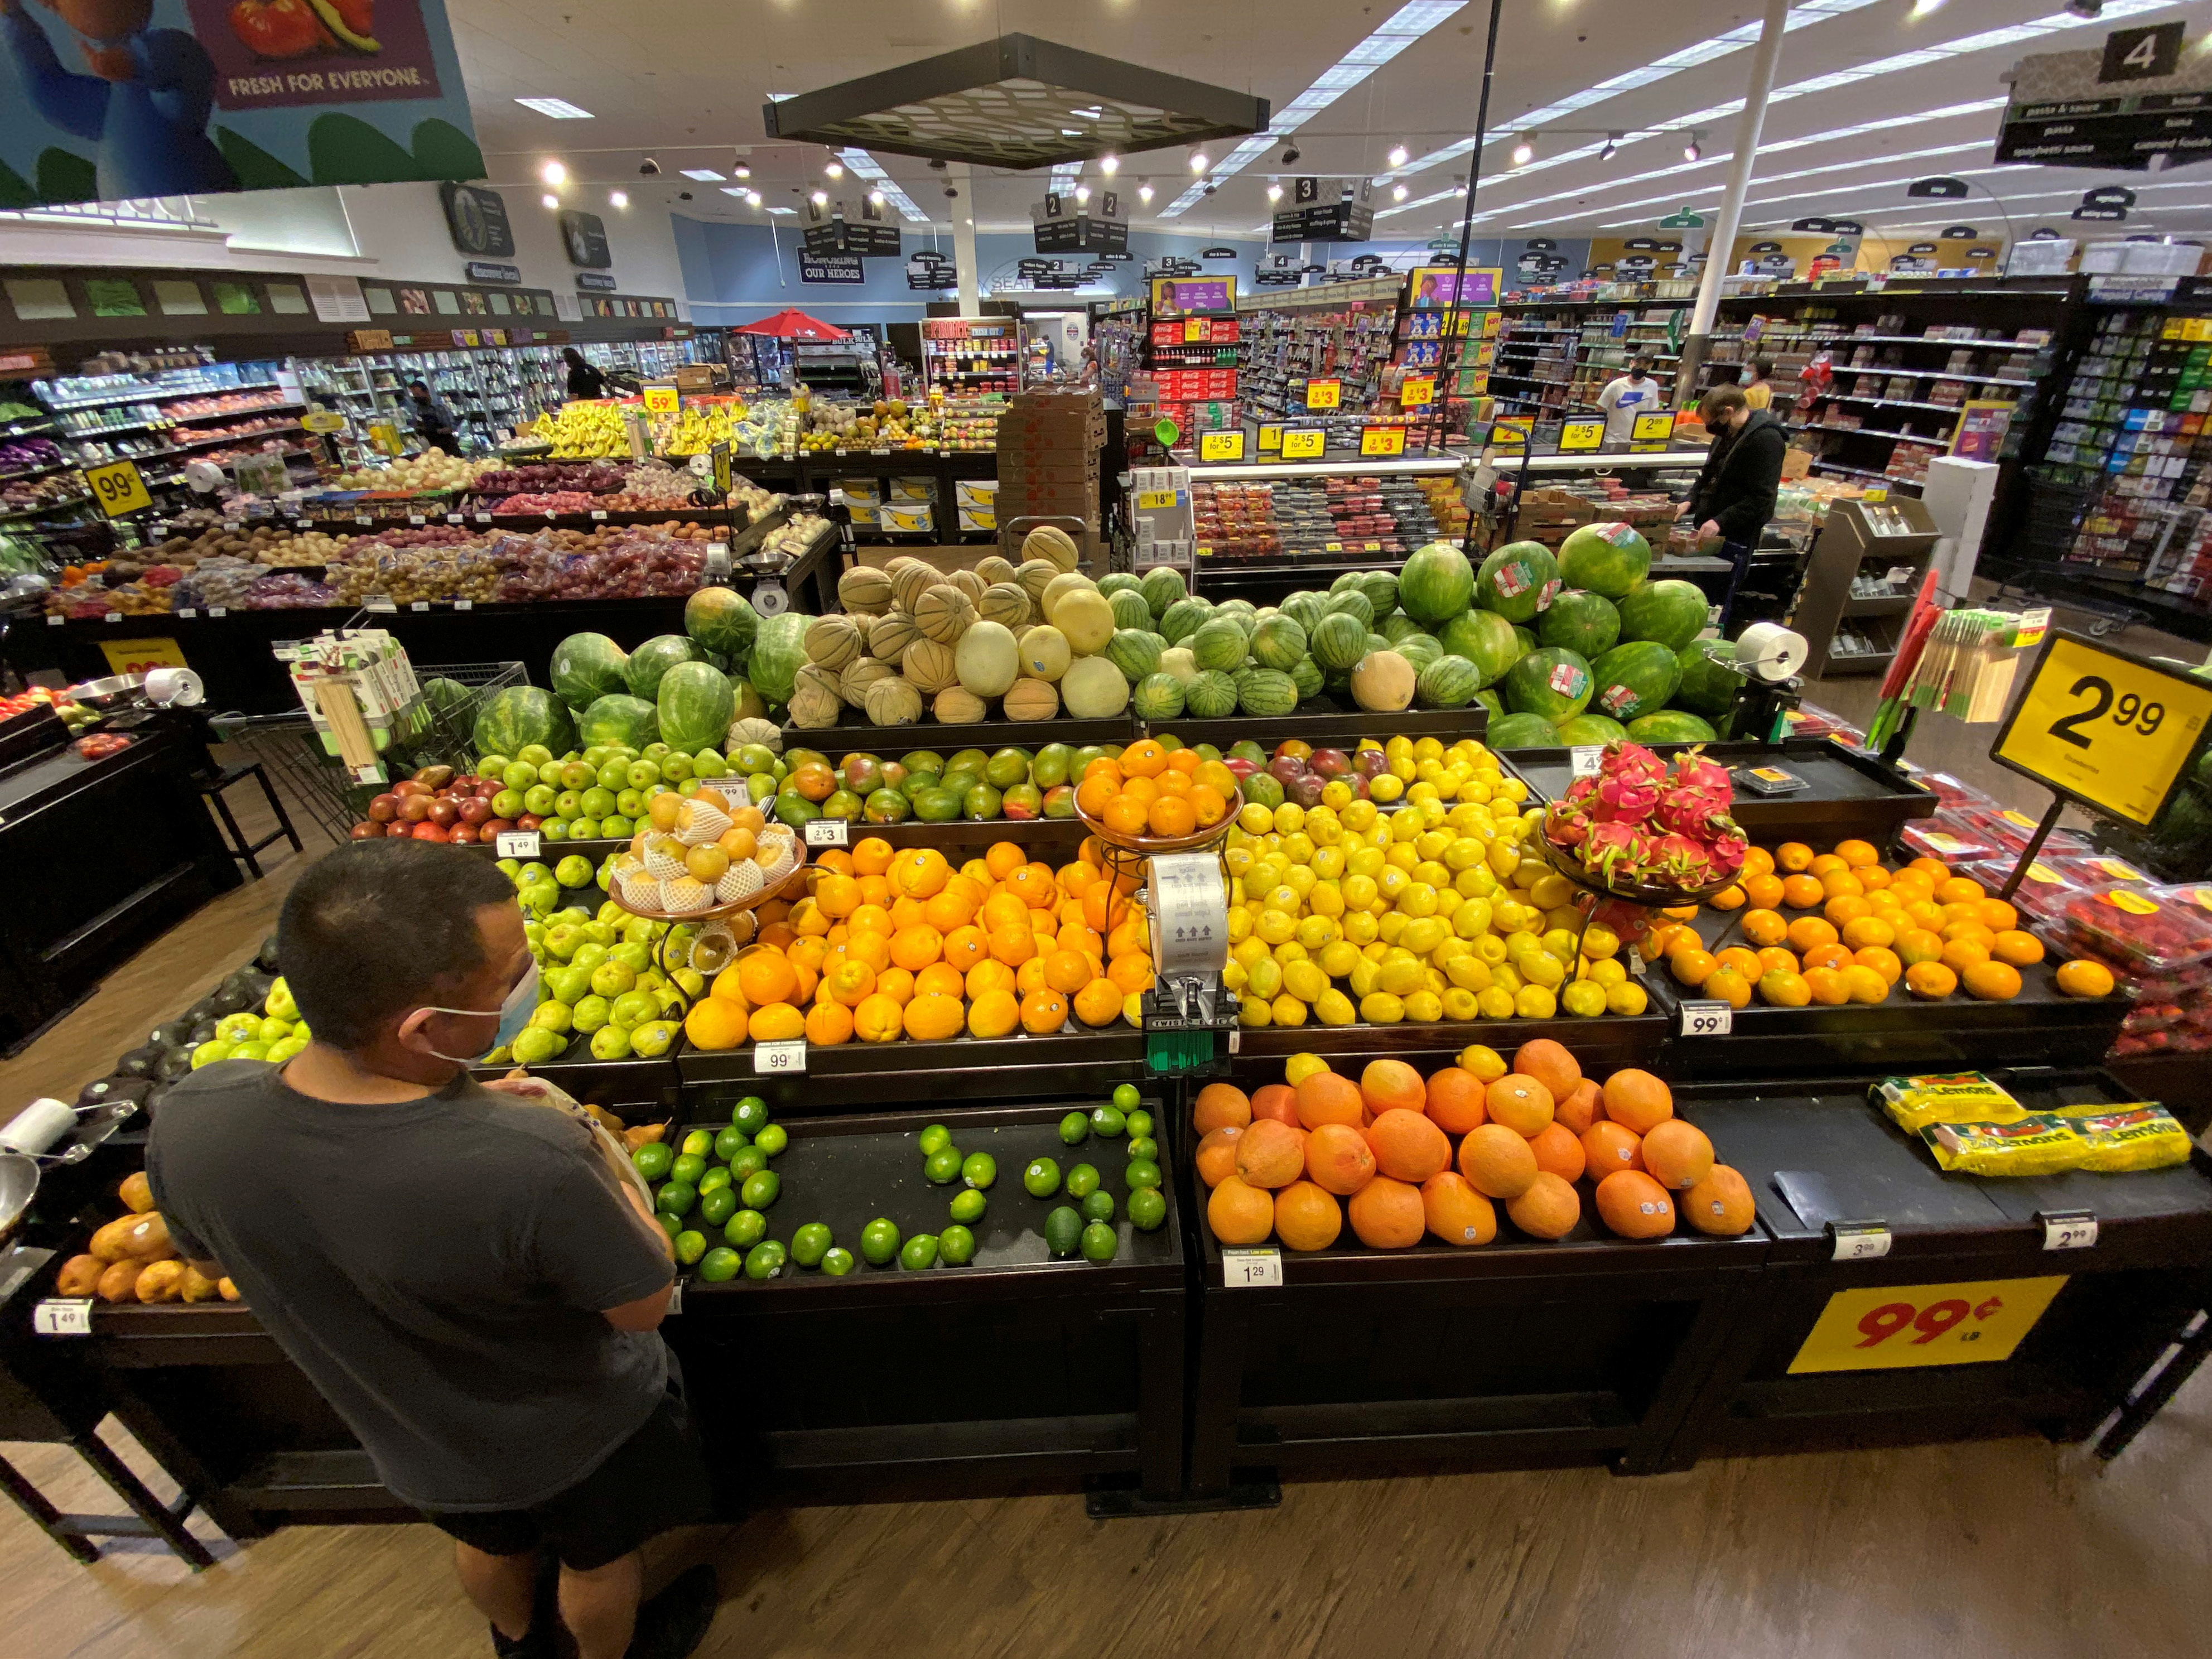 A shopper browses for fruits at a Ralphs grocery store in Pasadena, California, U.S., June 11, 2020. REUTERS/Mario Anzuoni/File Photo